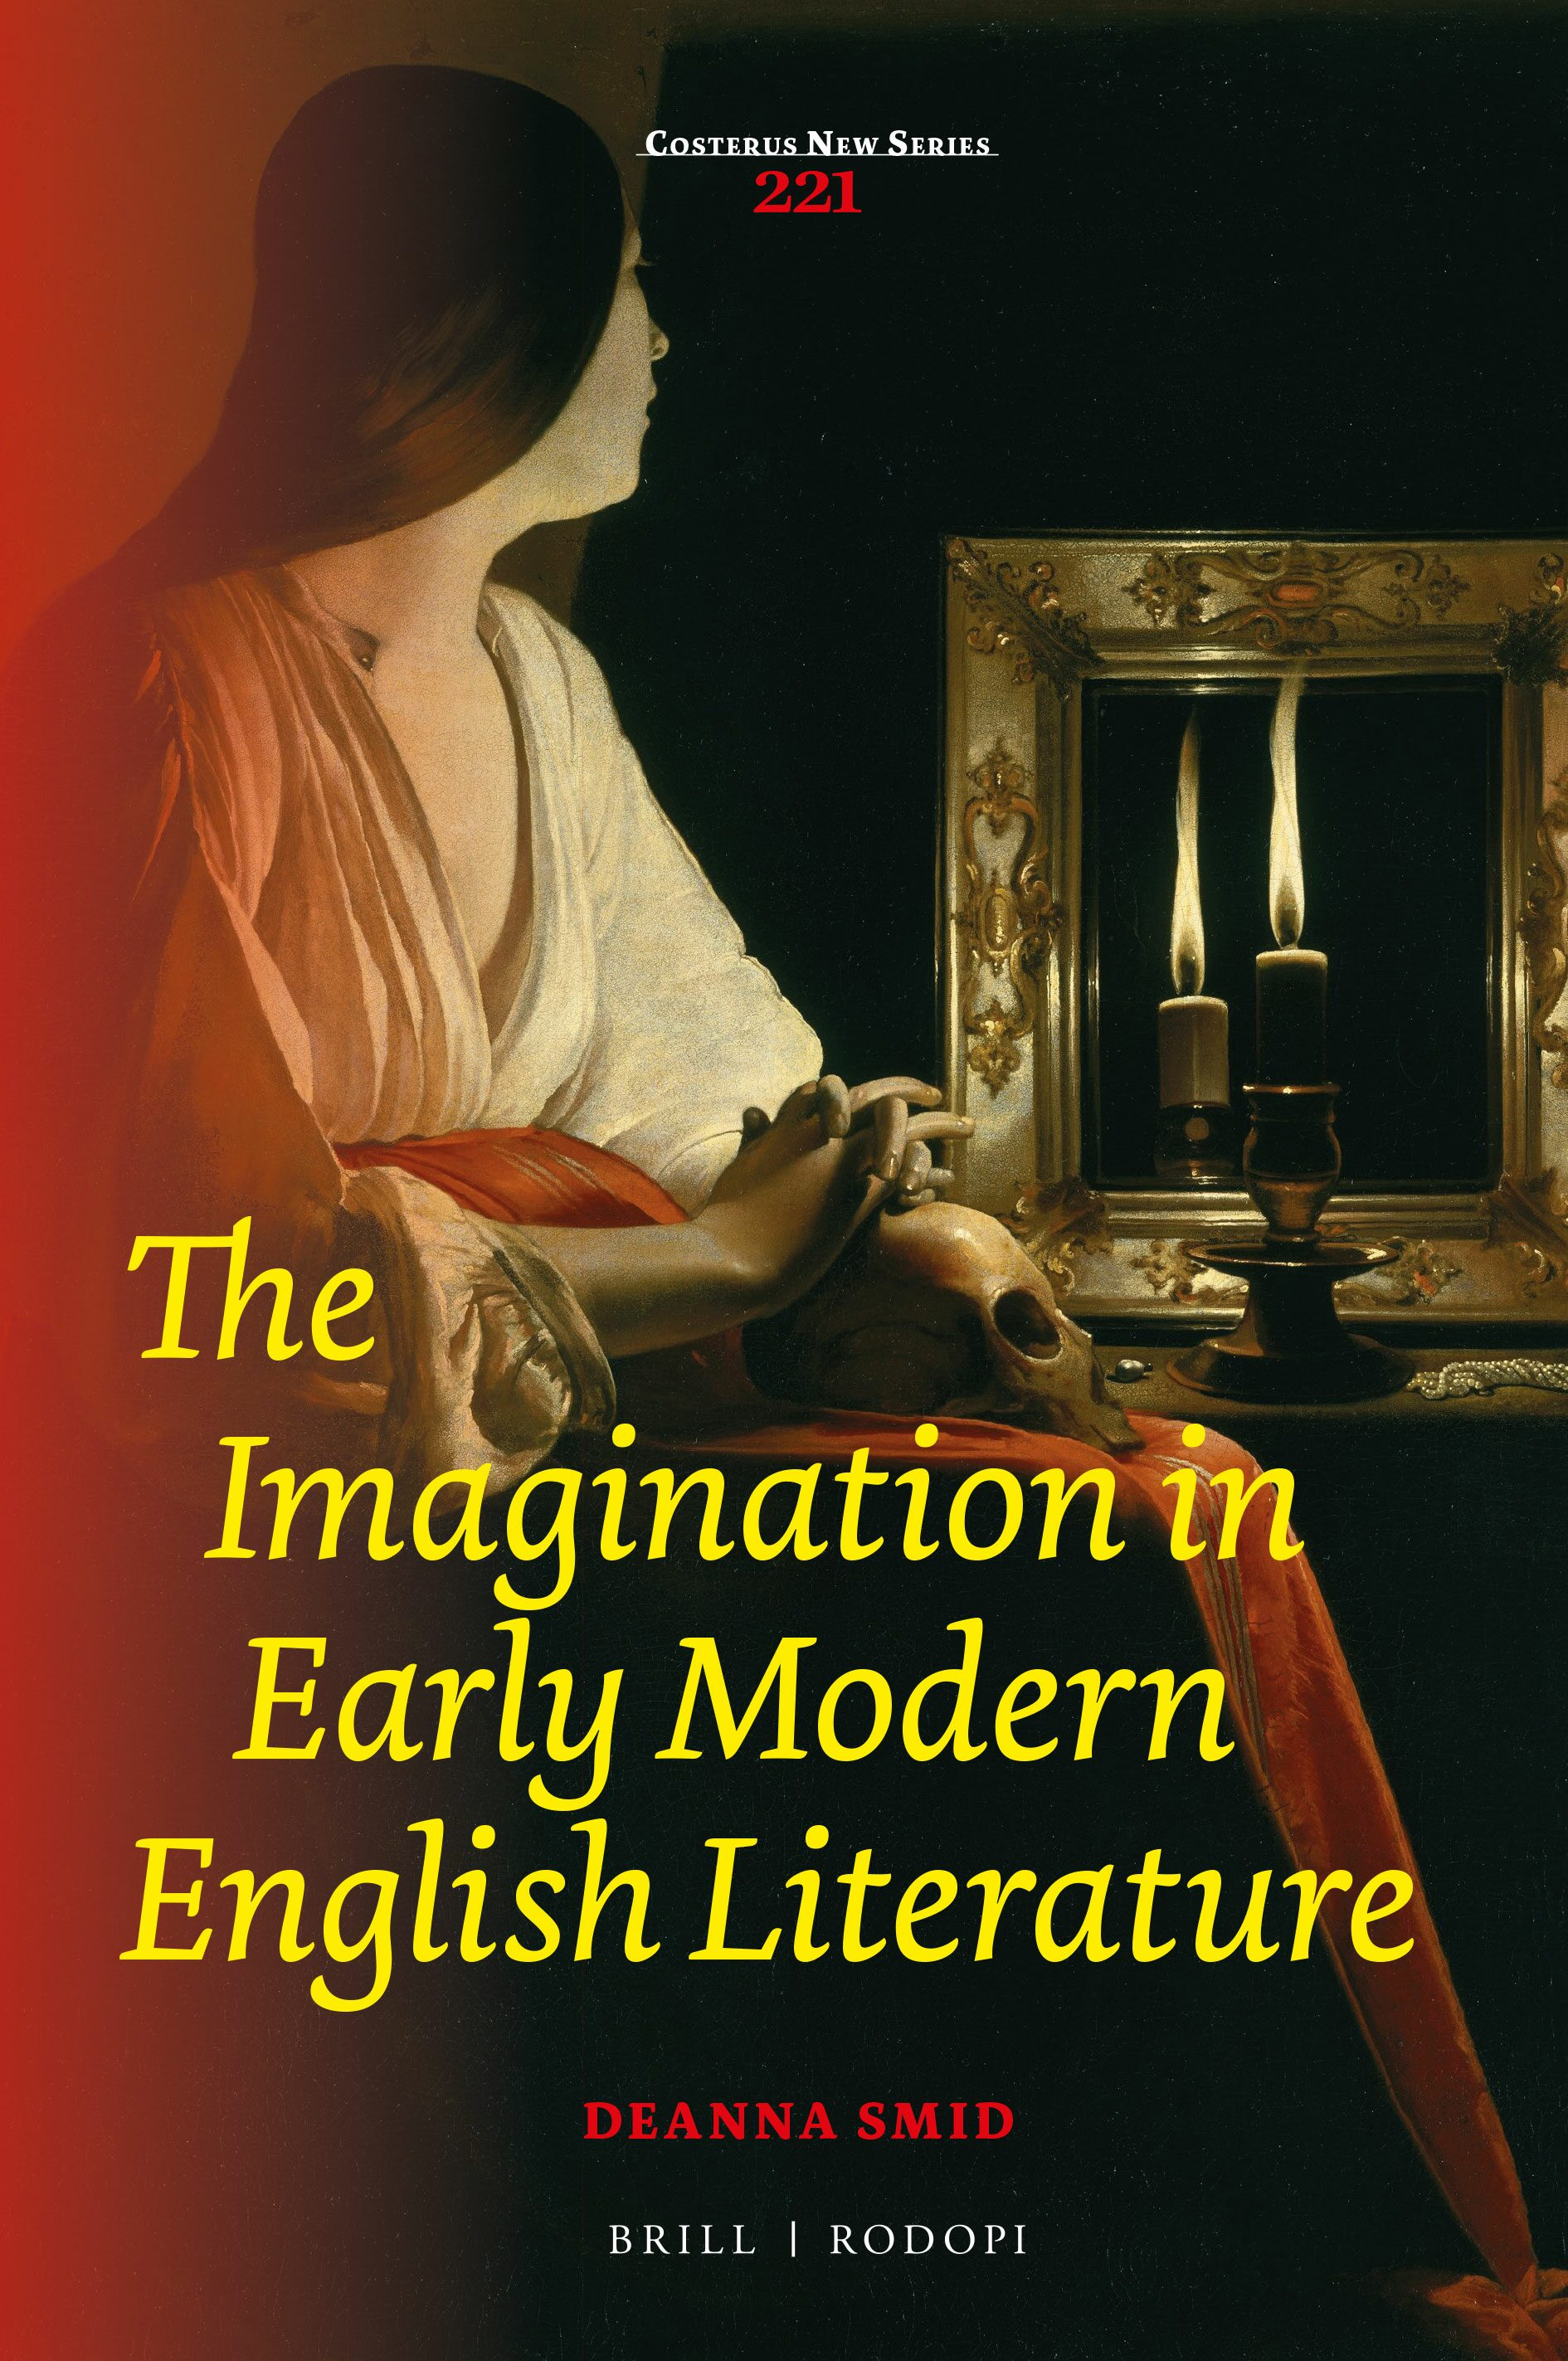 Anatomy Of Hell Deutsch introduction in: the imagination in early modern english